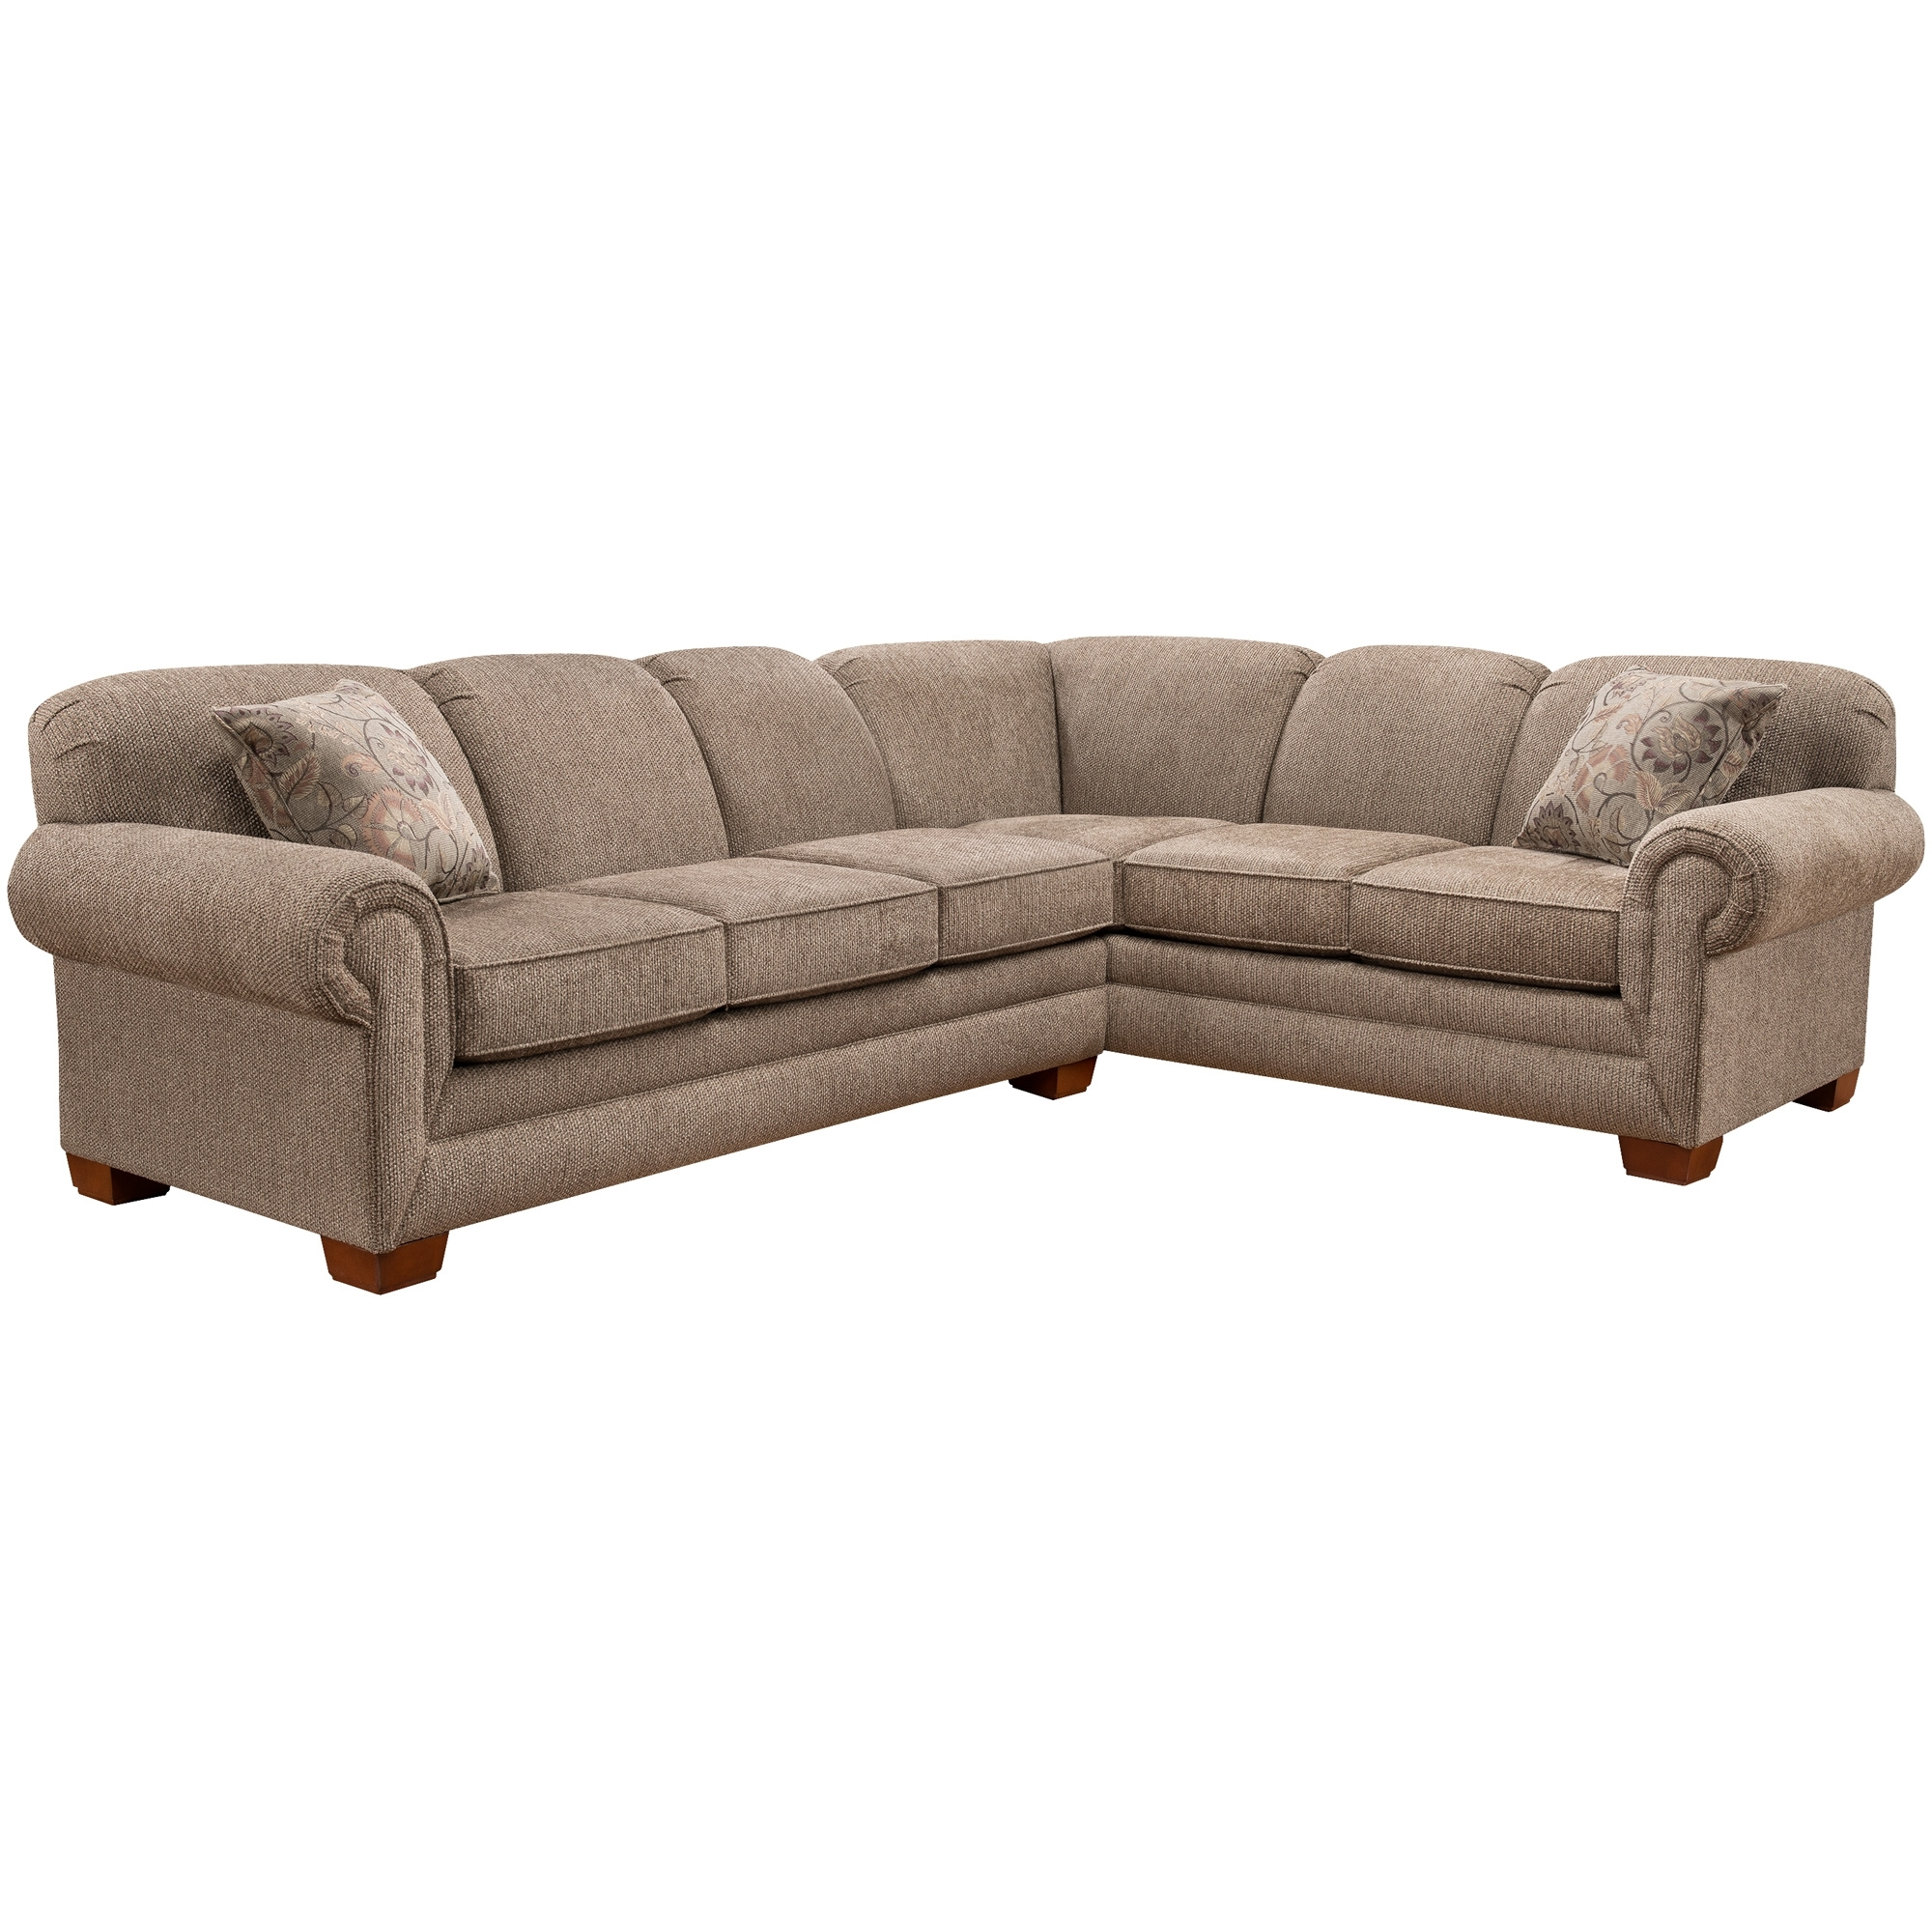 Slumberland Furniture | Tenor 2 Pc Brown Large Sectional pertaining to Harper Foam 3 Piece Sectionals With Raf Chaise (Image 27 of 30)